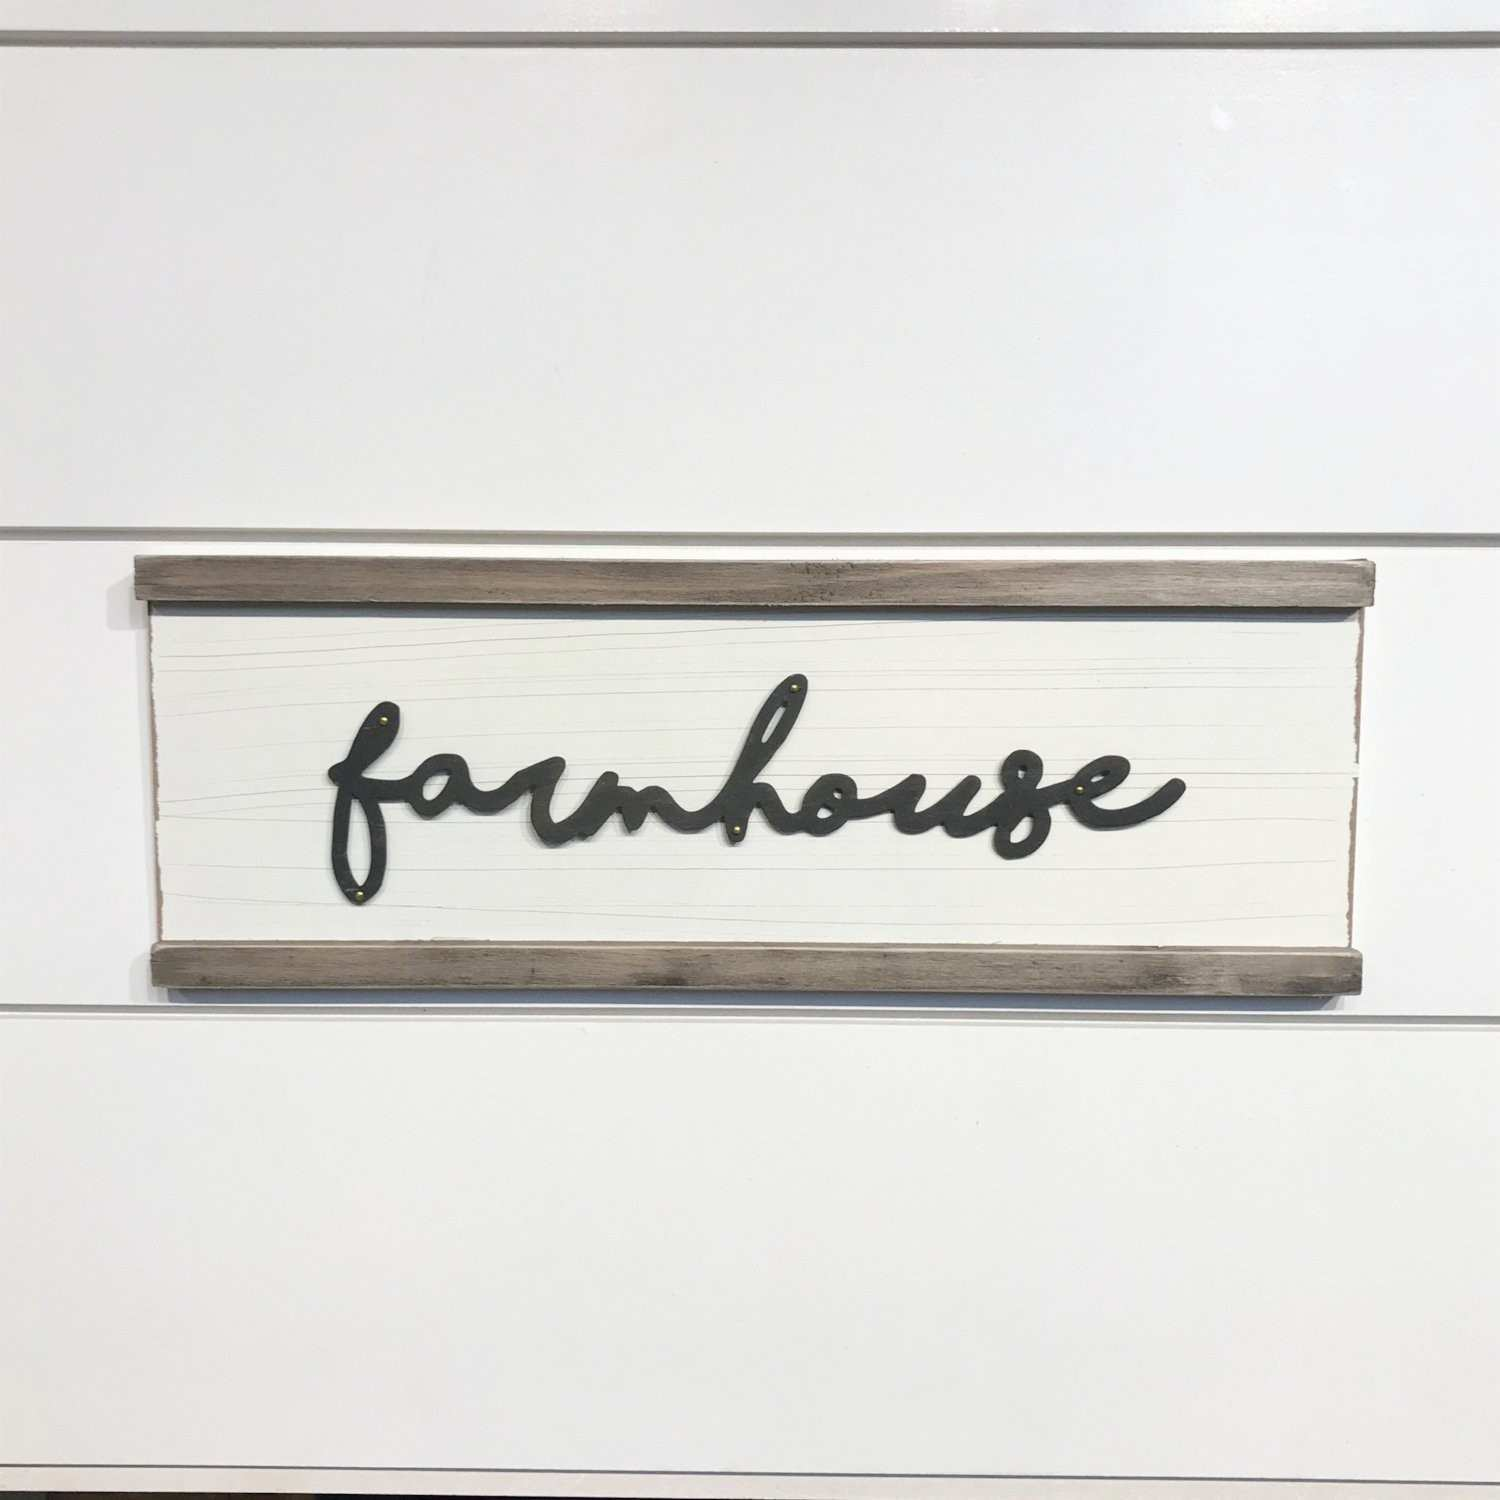 Farmhouse Wood and Metal Wall Decor Sign